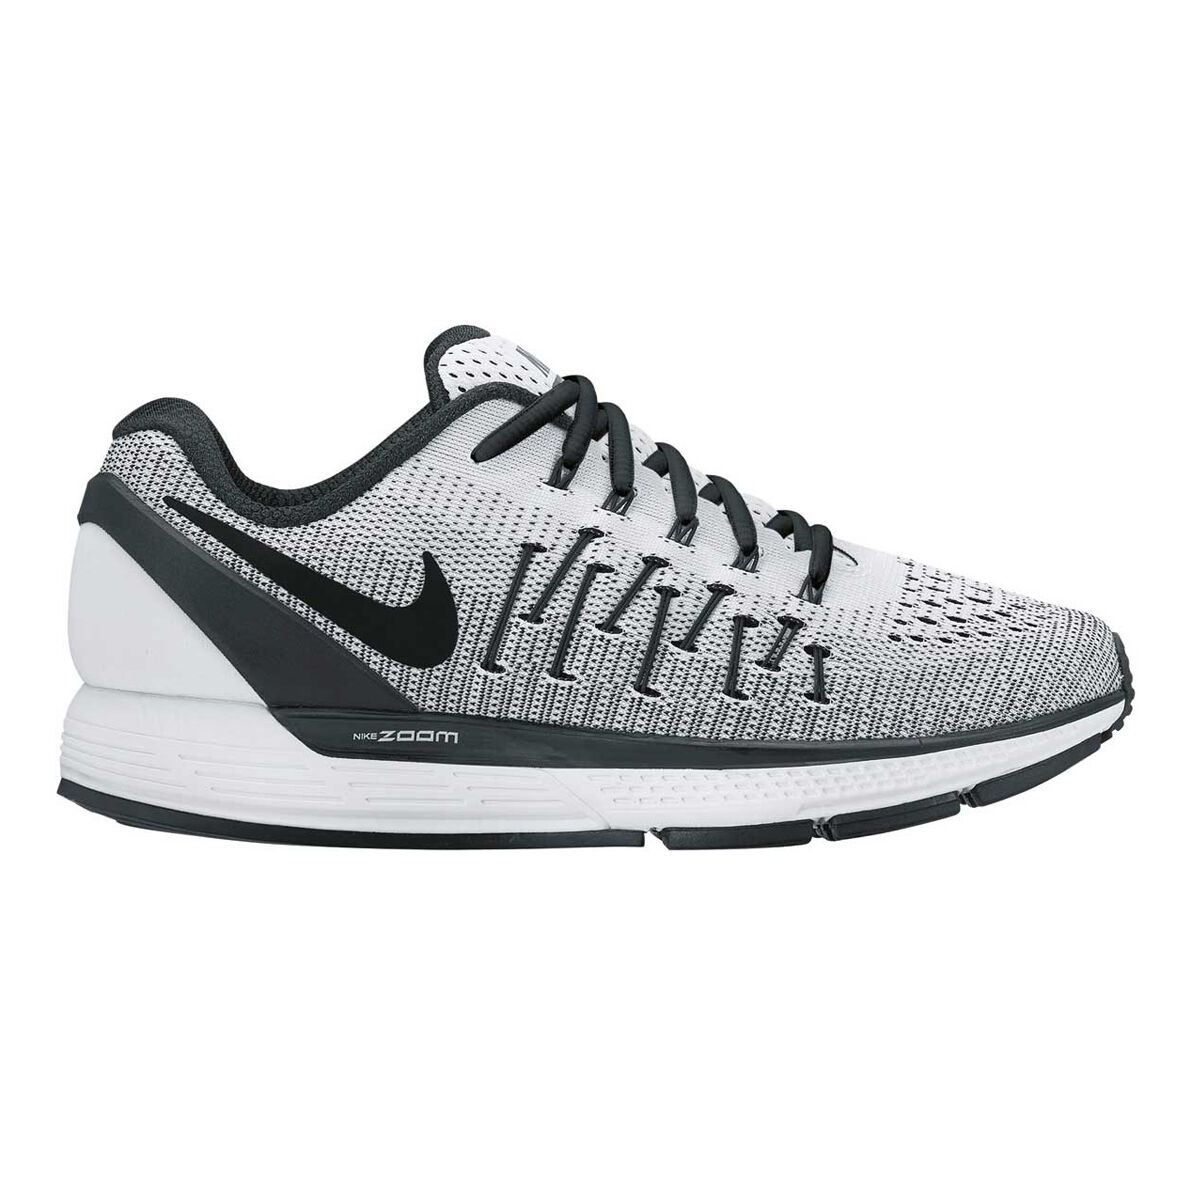 Zoom Womens Us 2 Running Odyssey Shoes Air 5 Grey 7 Nike White b6vYyf7gI